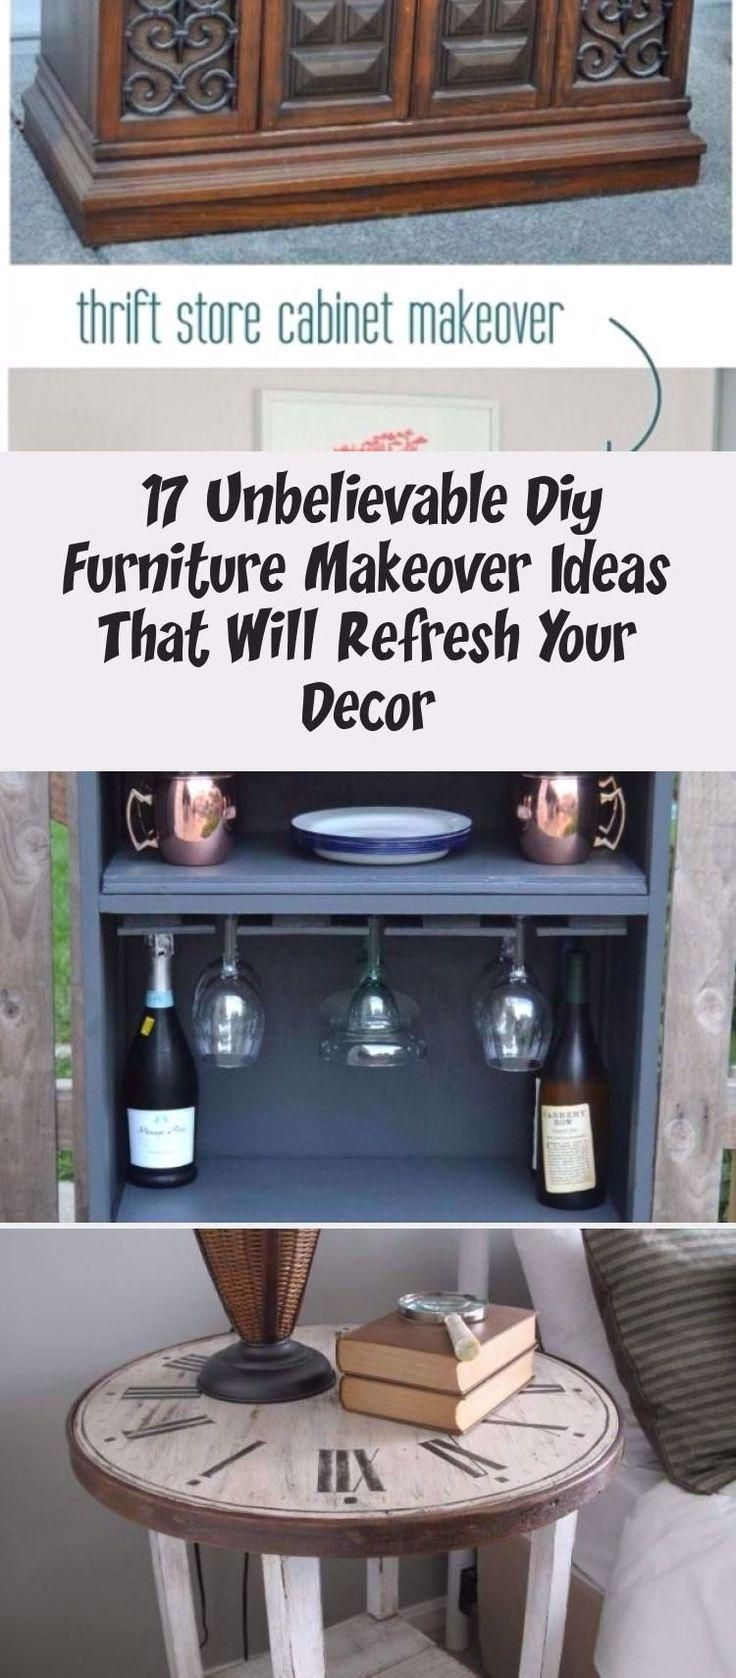 #HomeDecorDIYRecycle #Furniture #Makeover  17 Unbelievable DIY Furniture Makeover Ideas That Will Refresh Your Decor